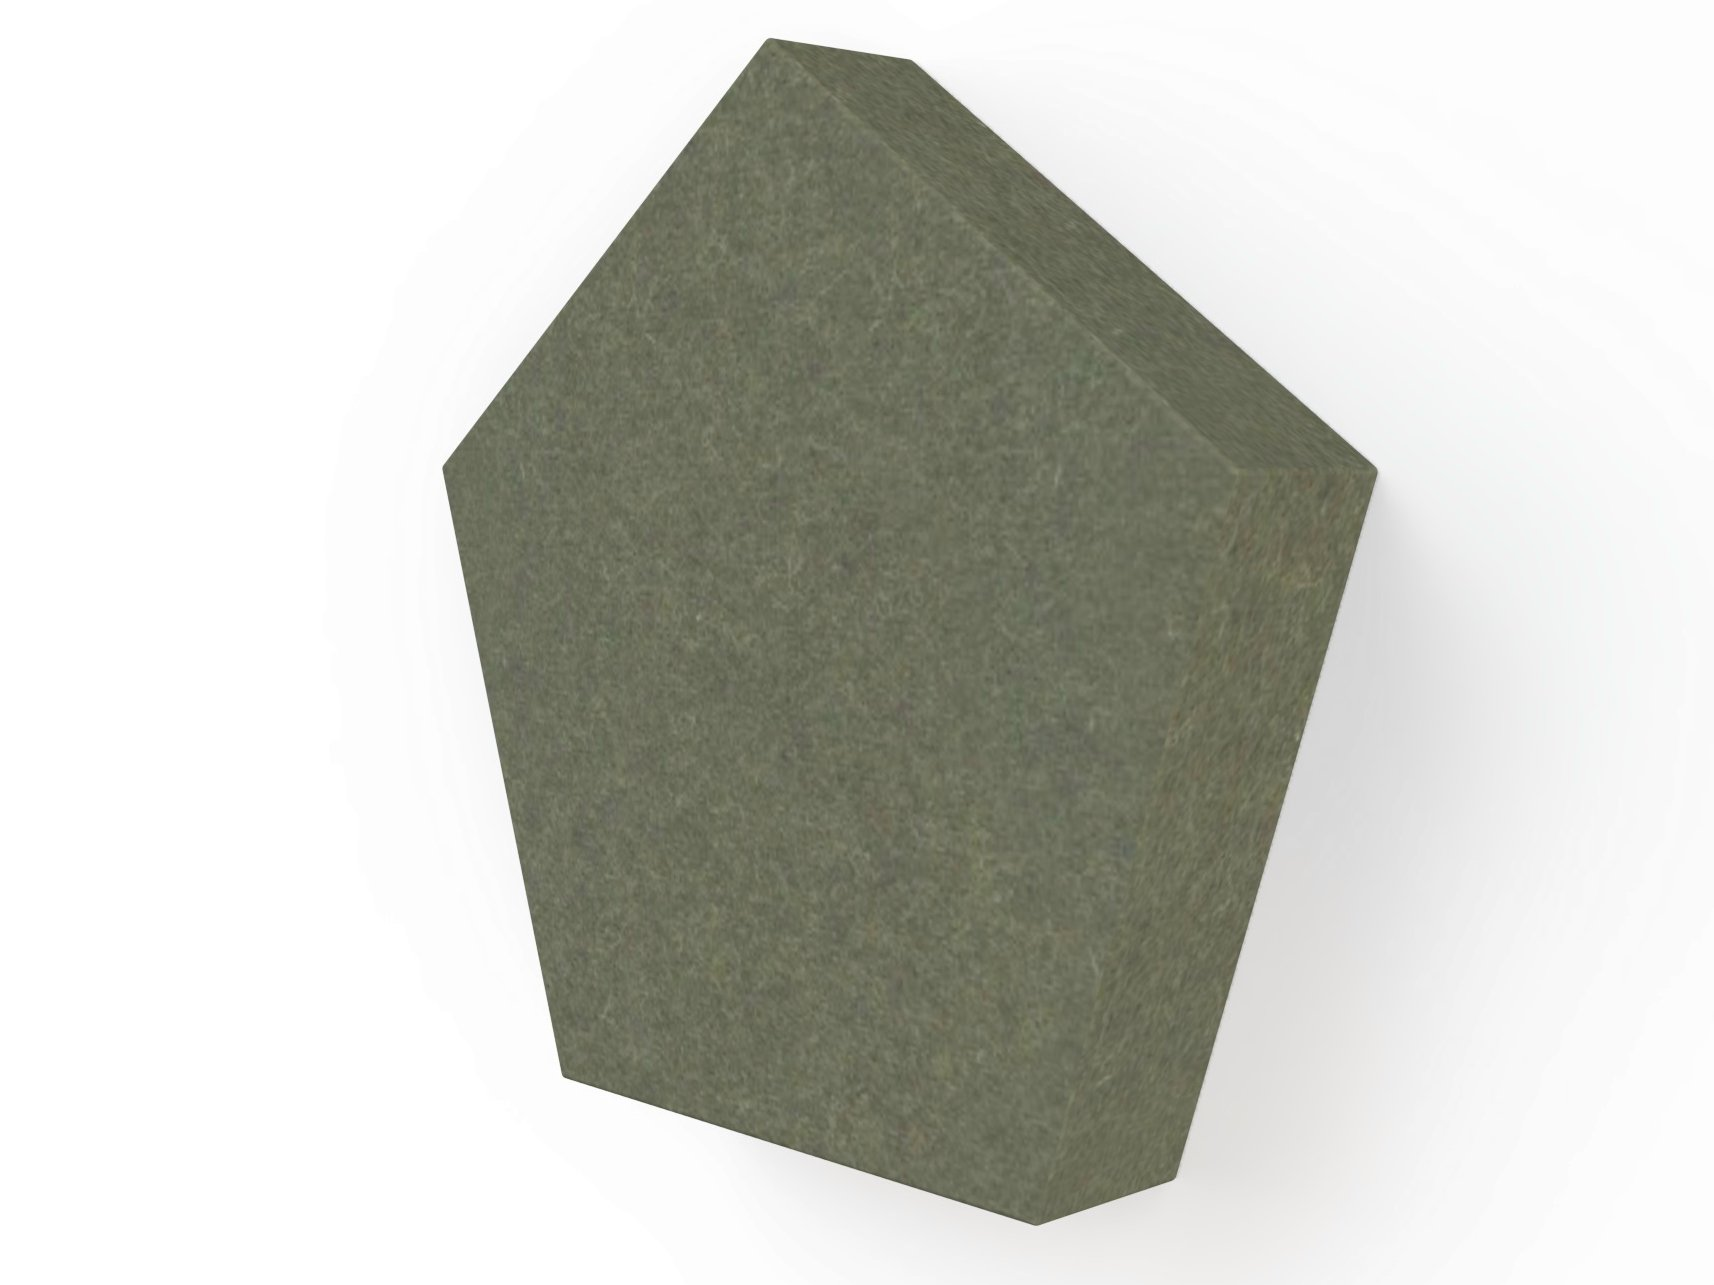 Decorative acoustical panels buzziblox penta by buzzispace - Decorative acoustic wall panels ...